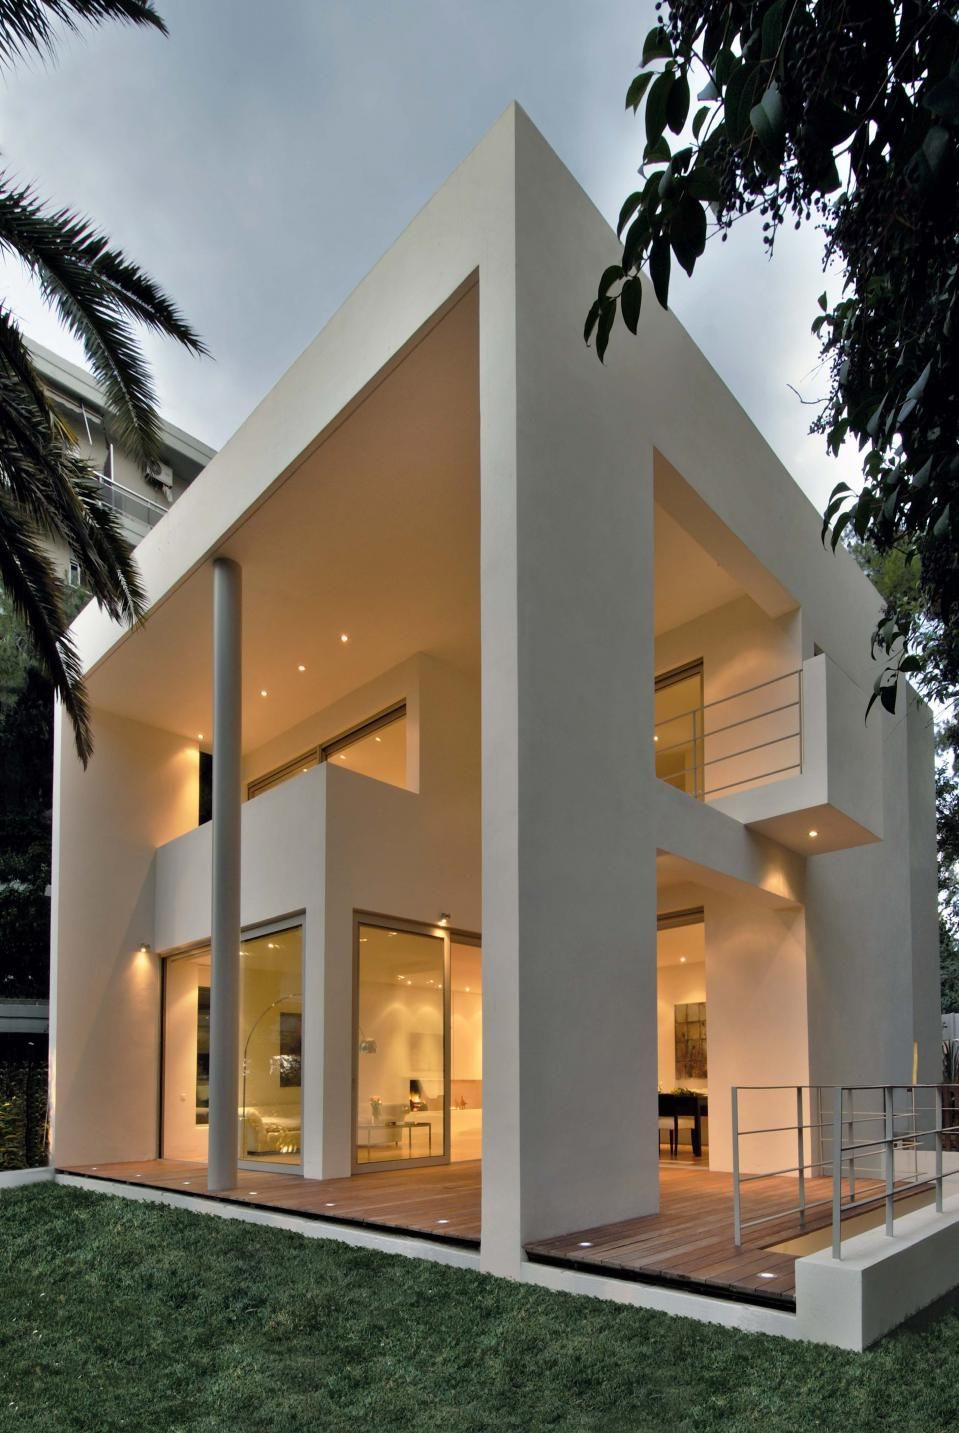 Beautiful Architecture Houses Design Best Of 50 Examples Stunning Houses & Architecture